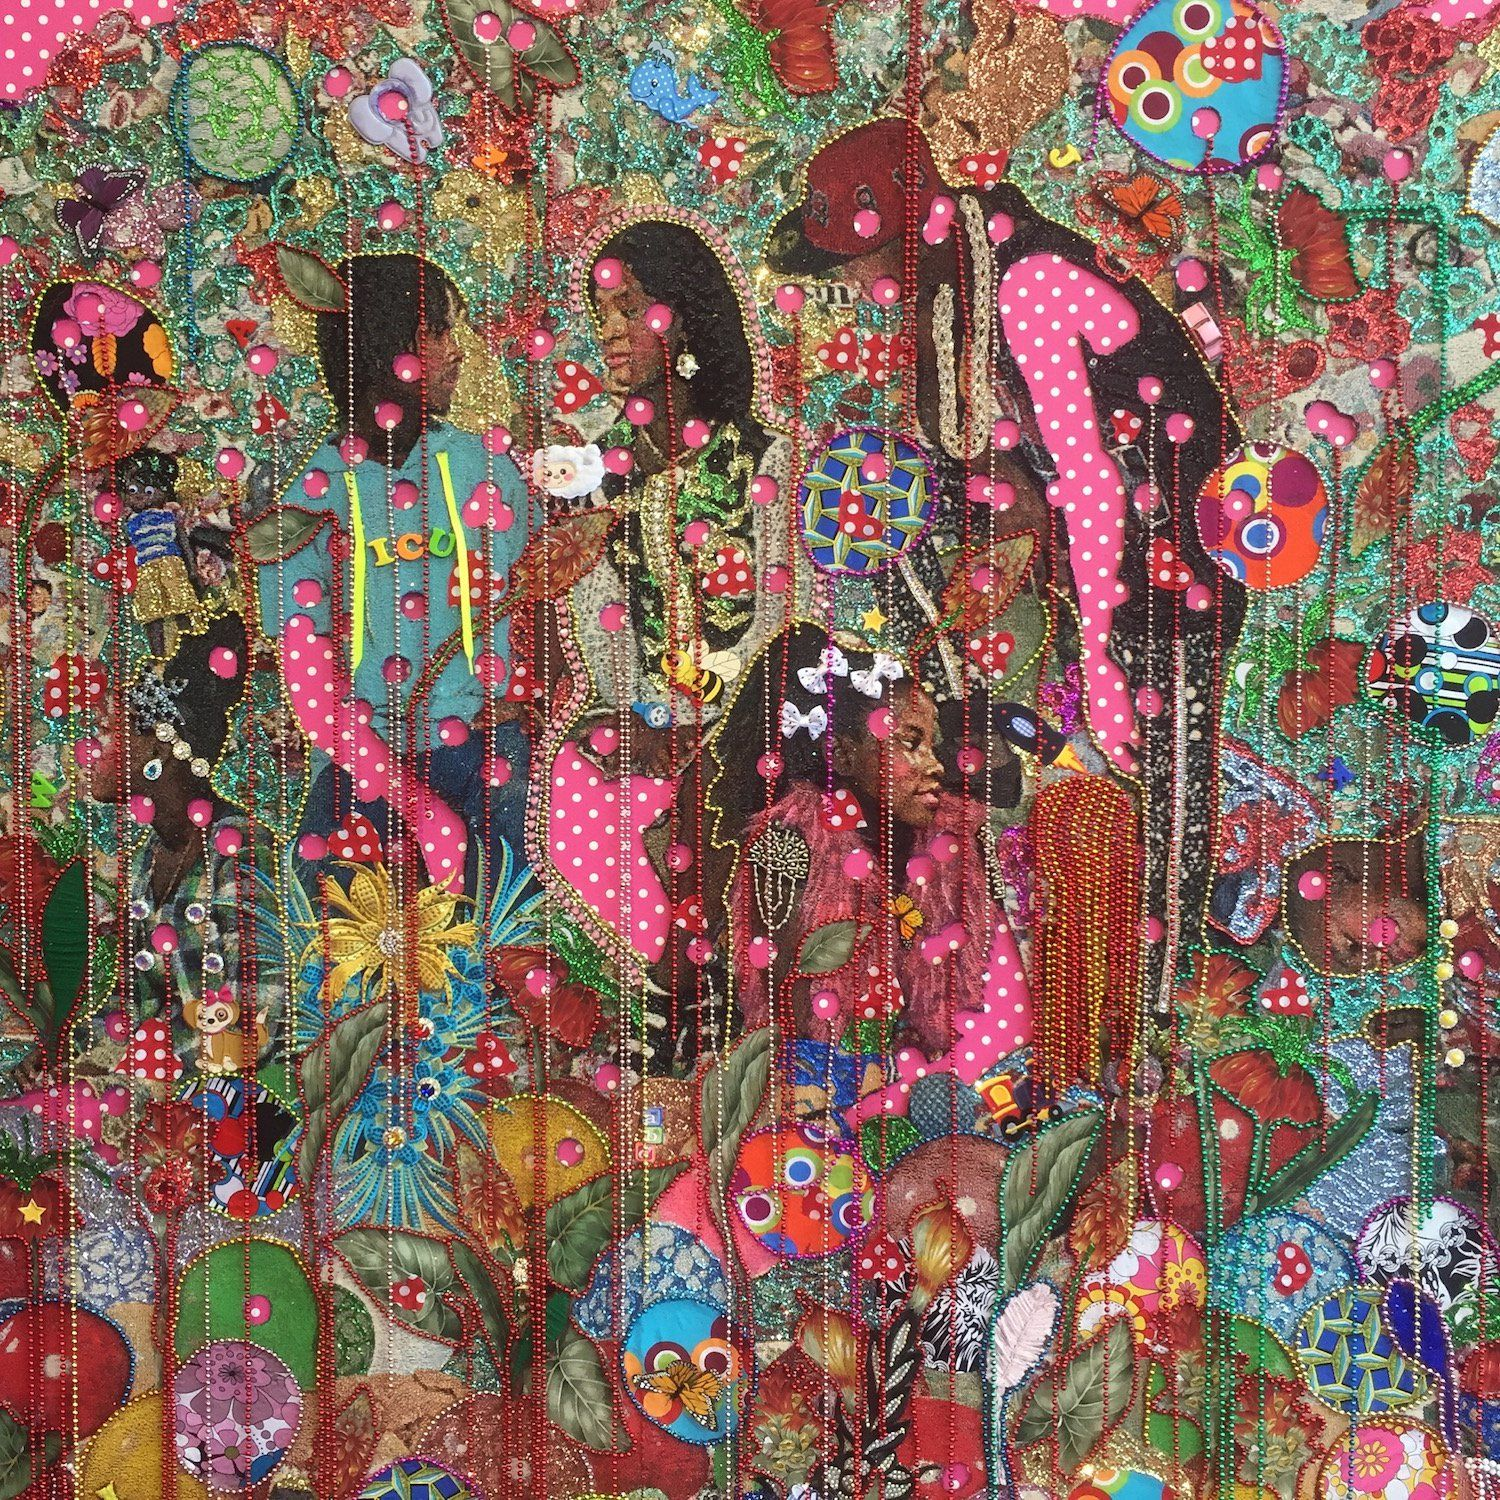 Ebony G Patterson Love When They Grow Up Detail 2016 Installed At The 32nd Sao Paulo Bienal Photo Courtesy Of The Artis Activist Art Art Artist